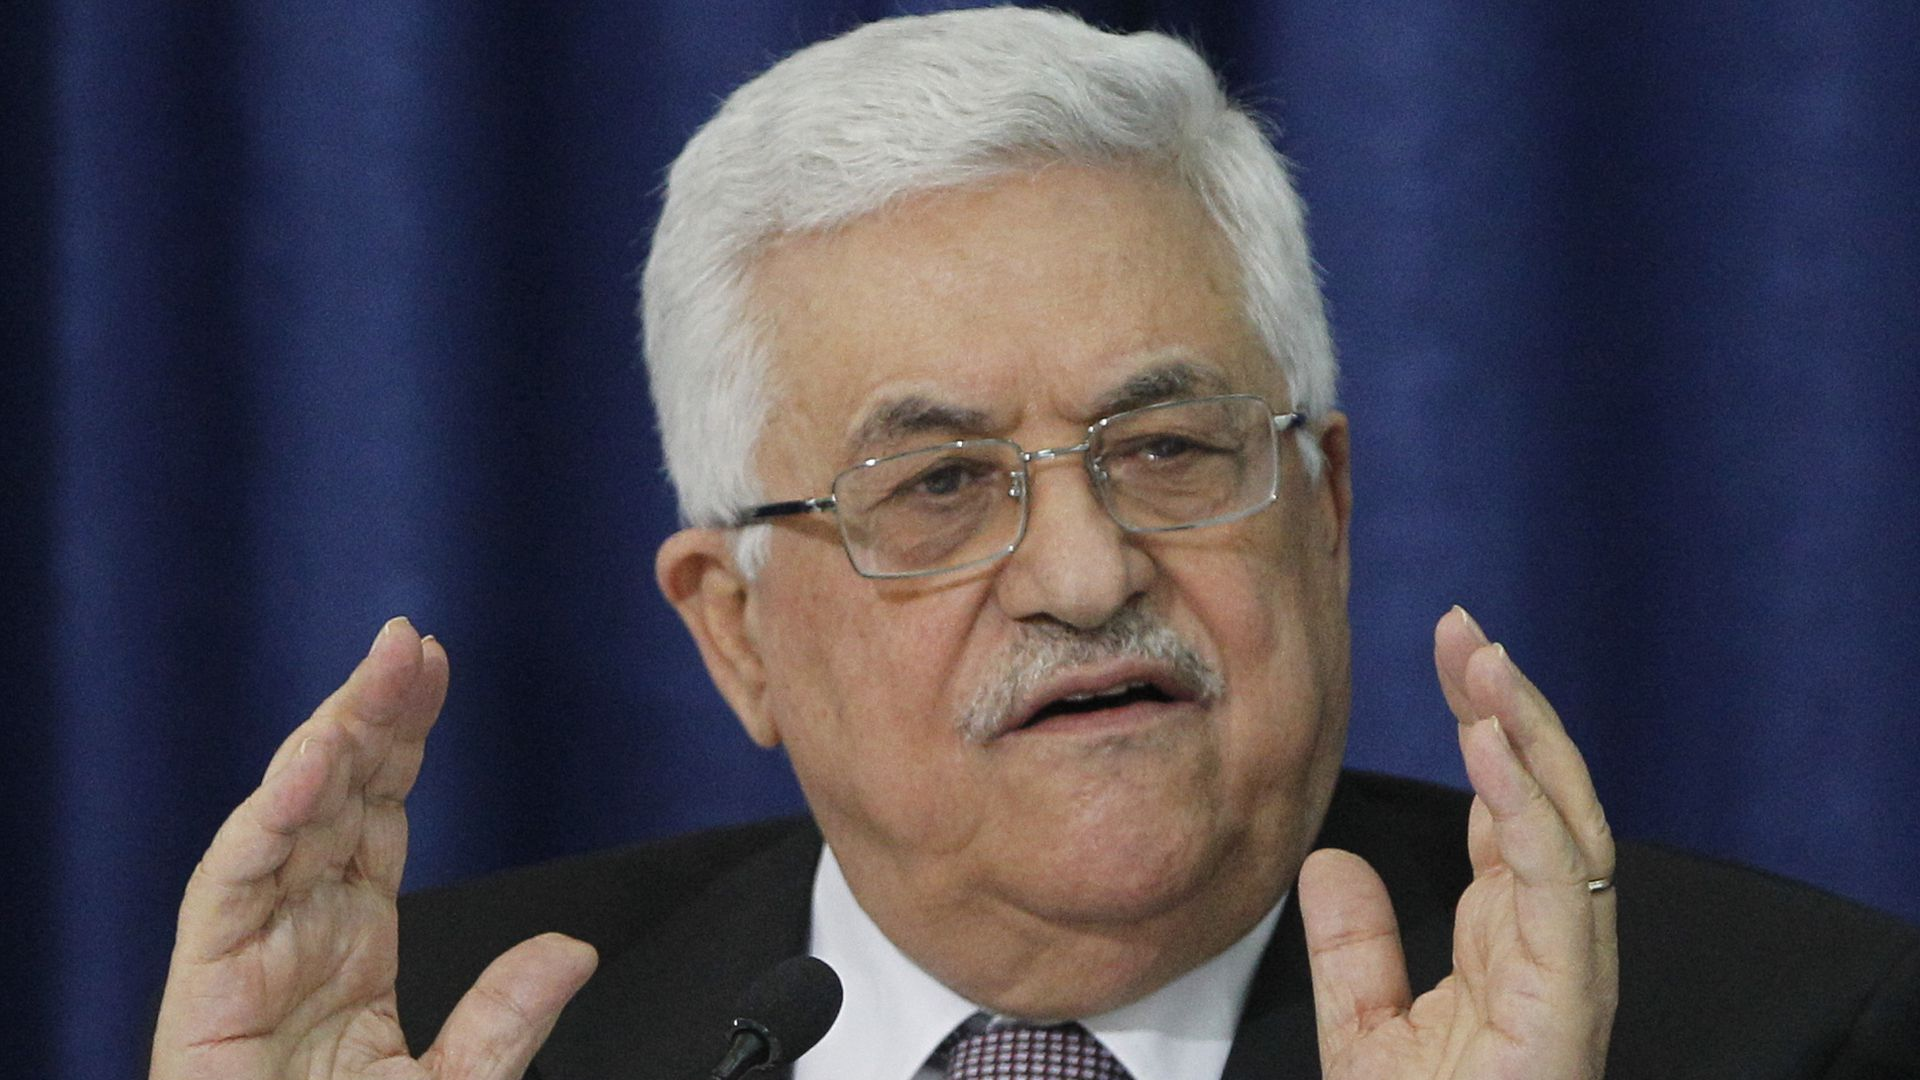 Palestinian leader: Trump just withdrew from peace process